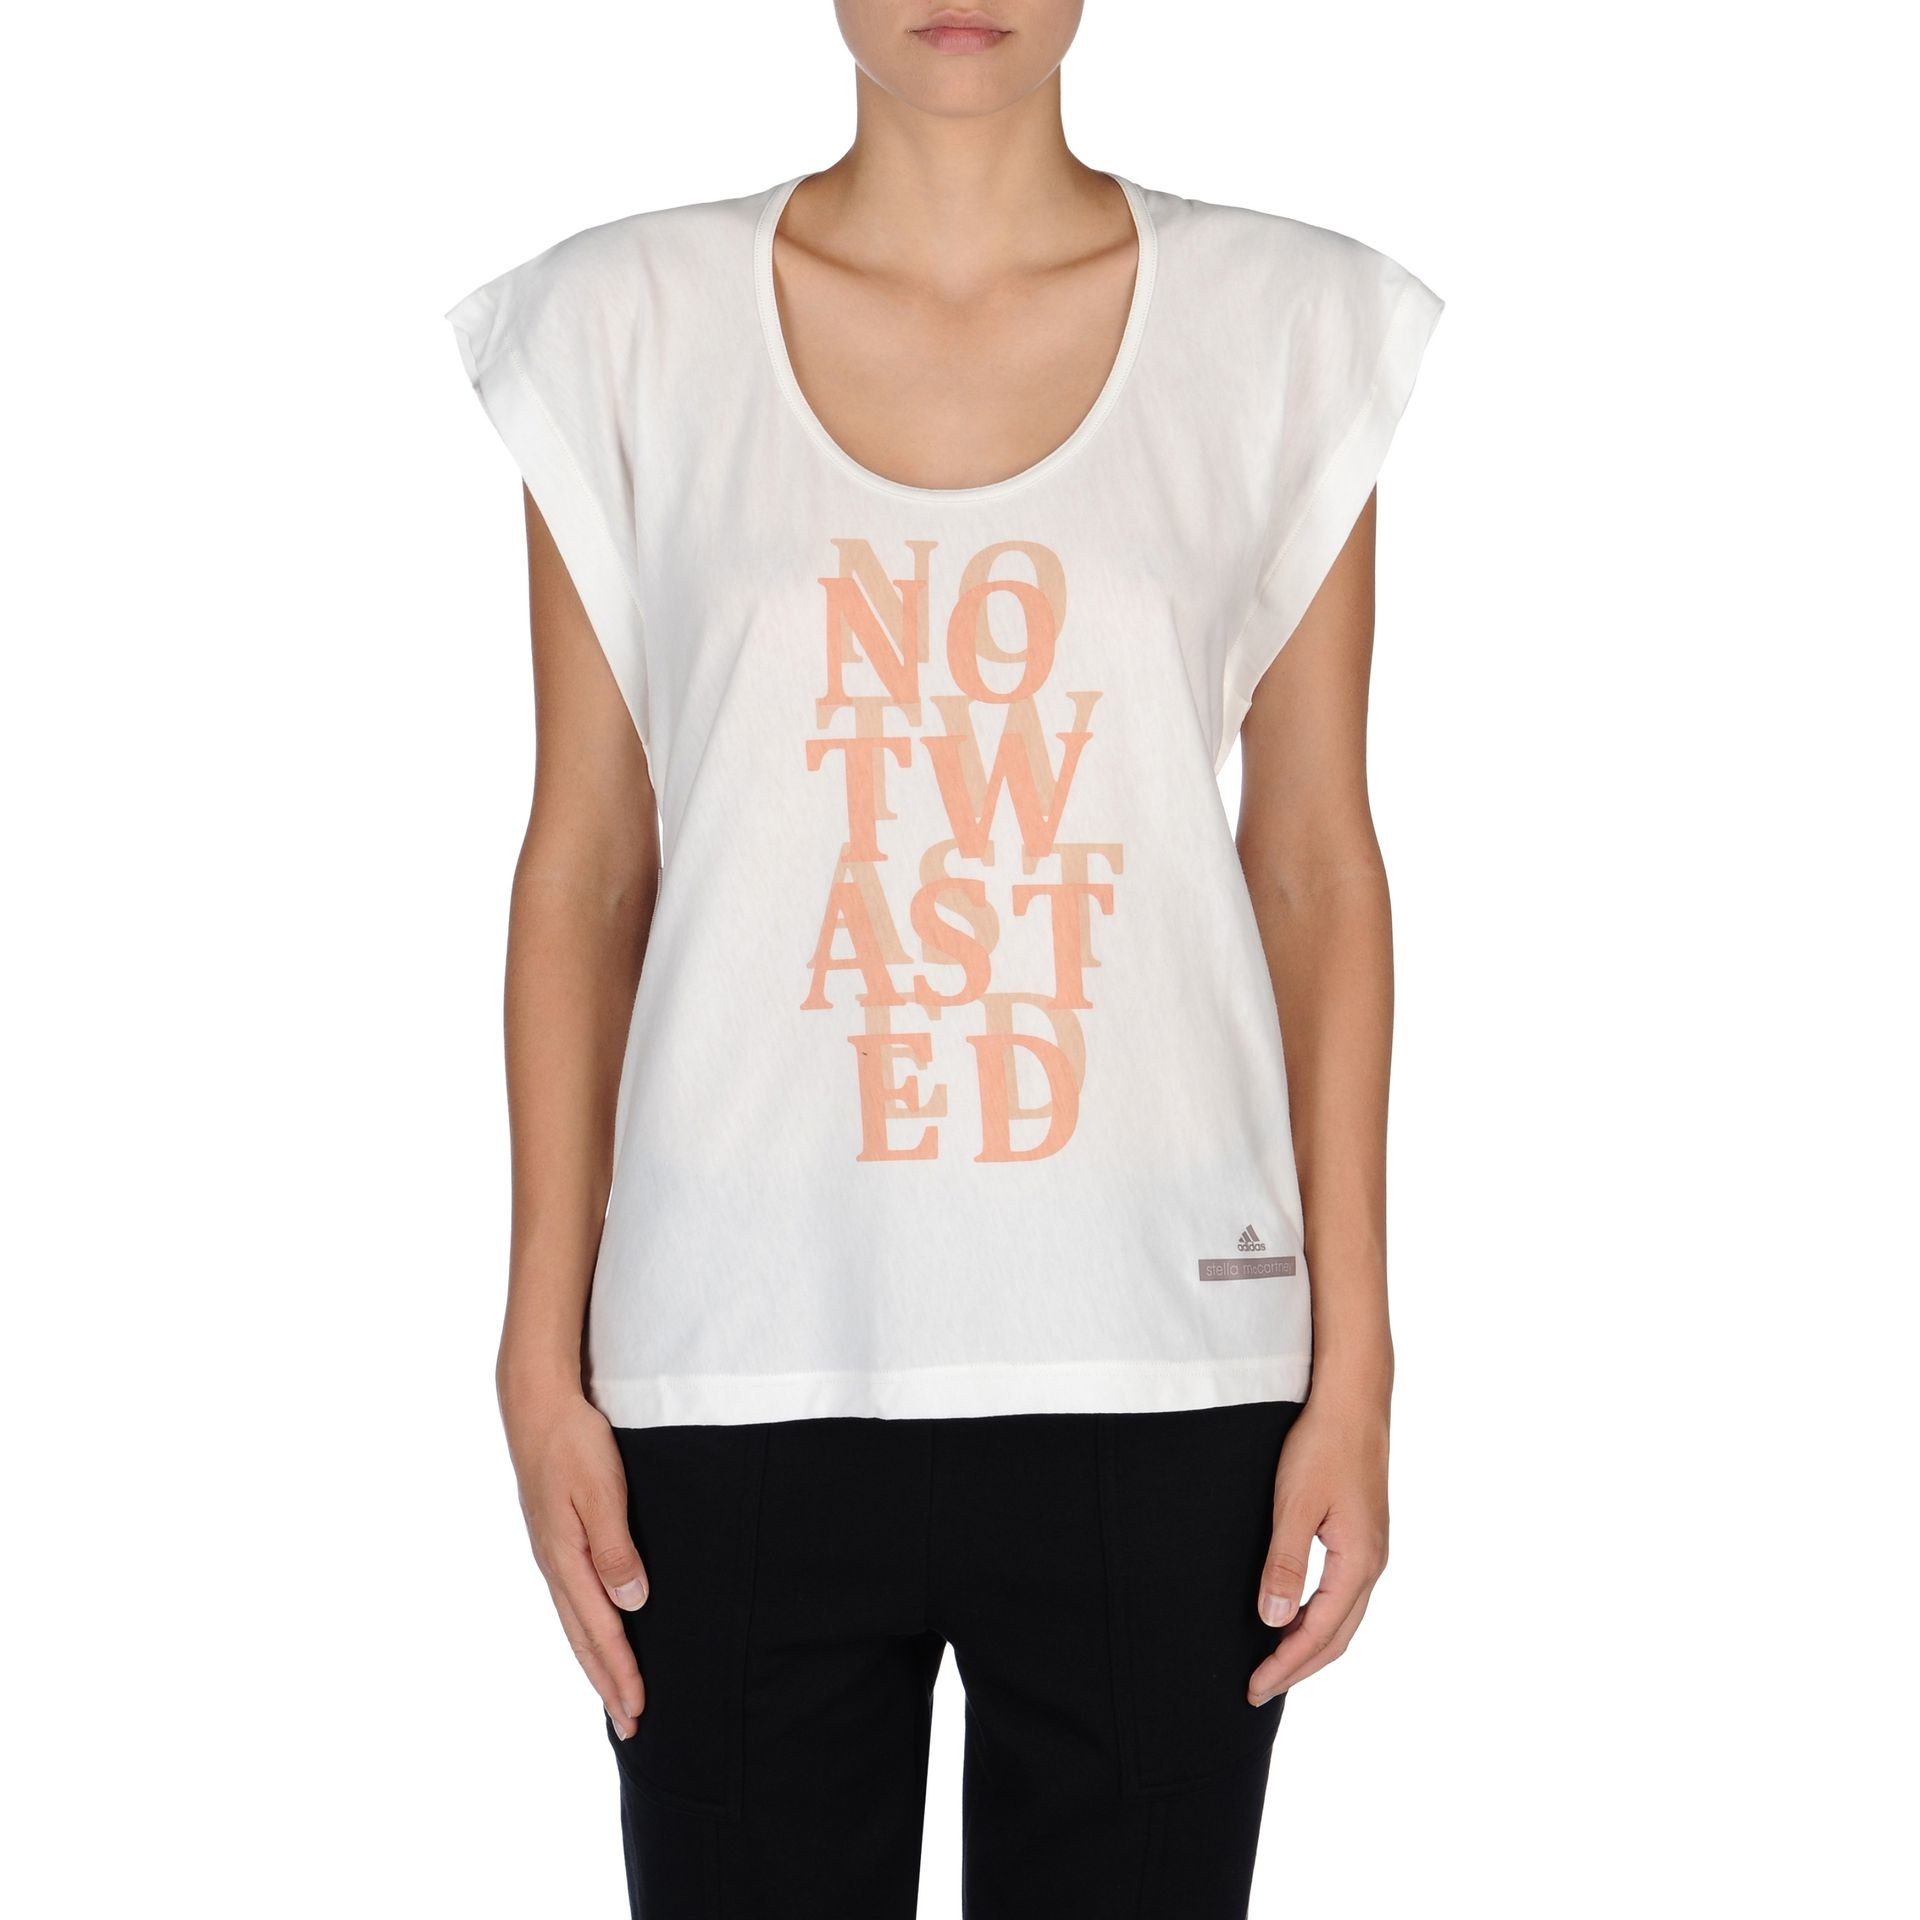 Lyst adidas by stella mccartney low waste graphic t for Stella mccartney t shirt